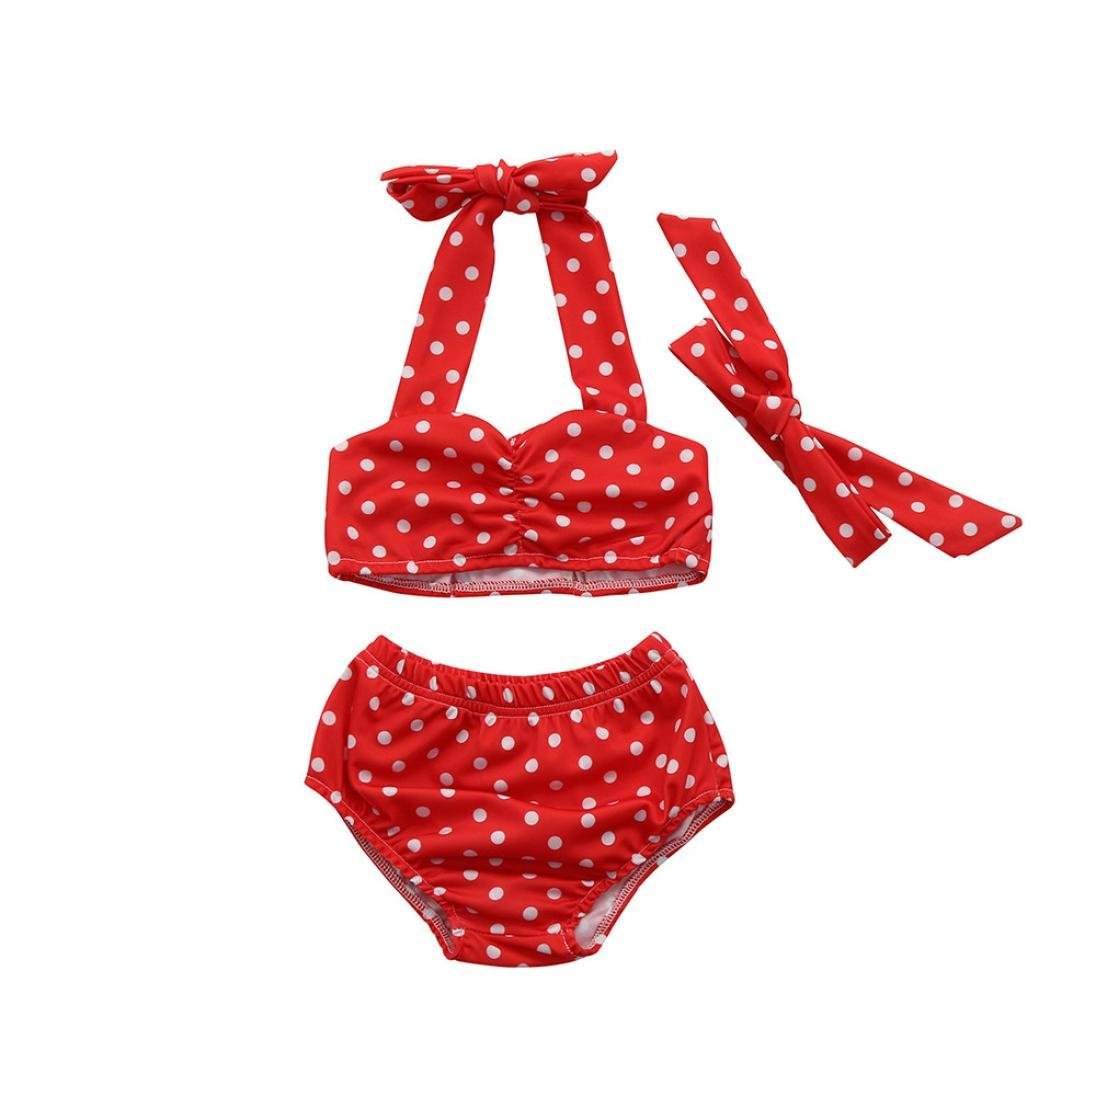 Baby Girls Bikini Set Swimsuit, 6 Months - 4 Years Old, BURFLY Summer Dot Printed Halter Neck Tops+ Shorts+ Bow Headbands, 3 PCS Infant Toddler Kids Beach Pool Swimwear Straps Bathing Baby Clothes Outfits